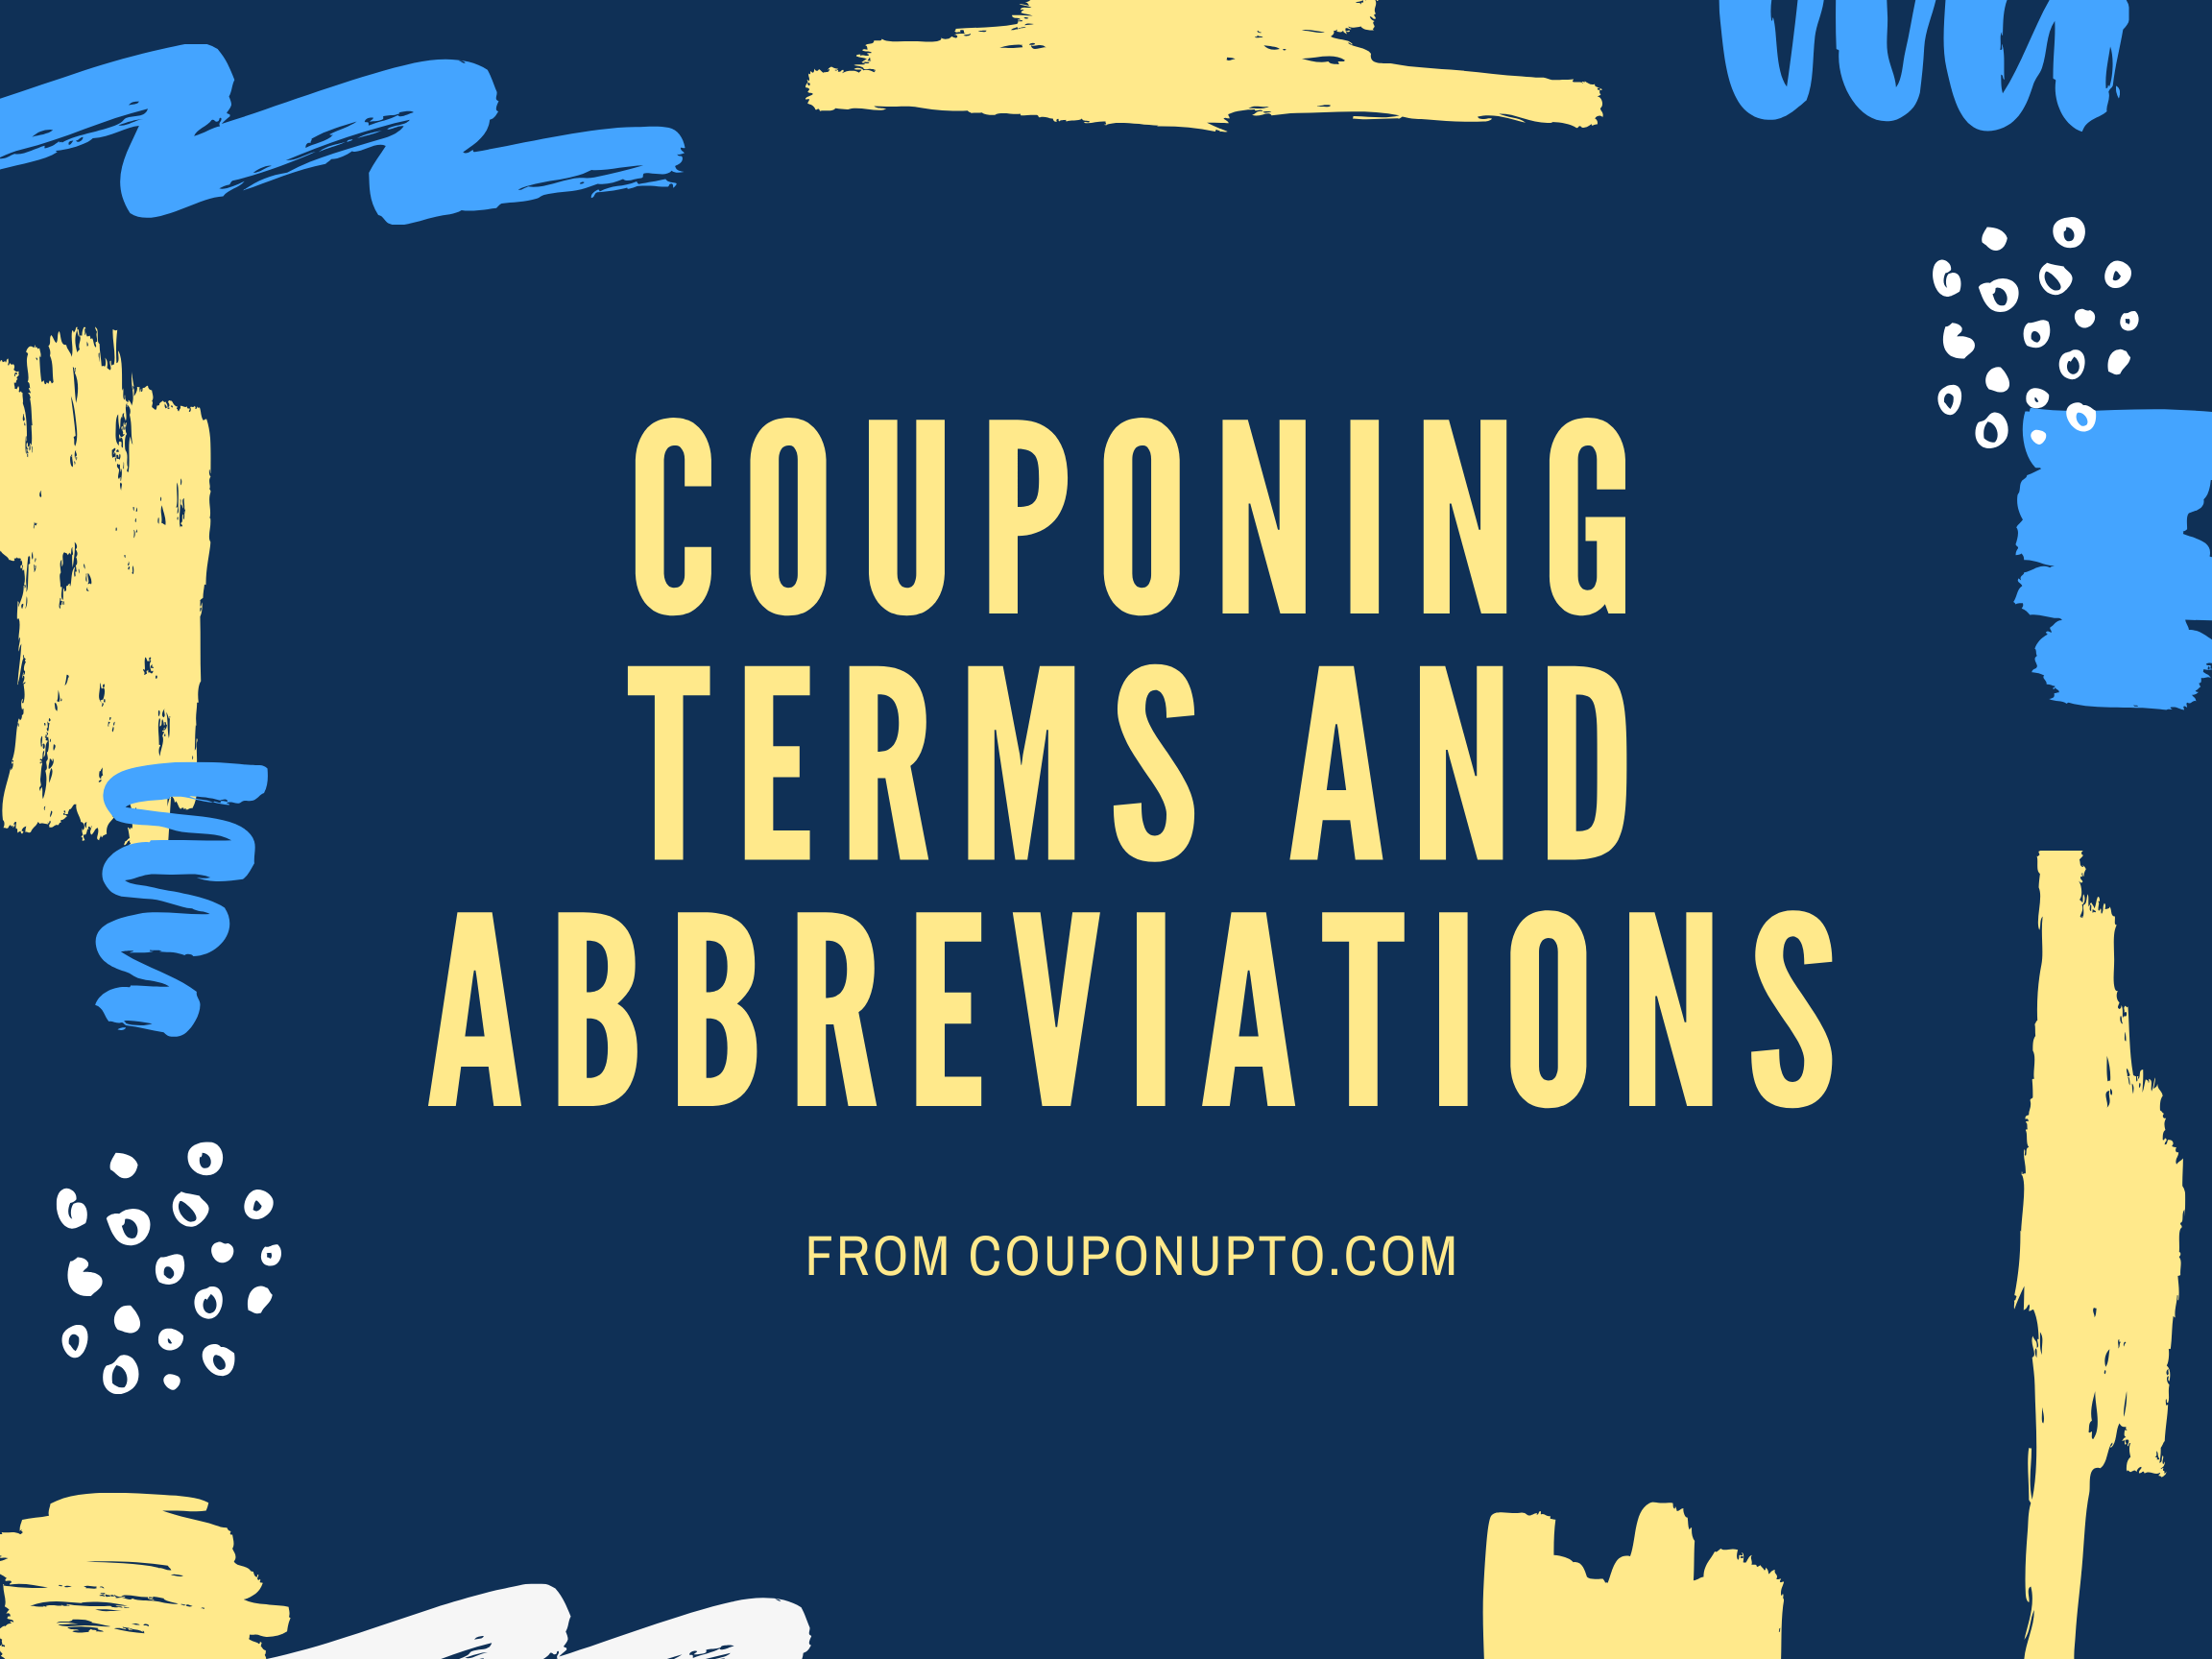 Couponing Terms and Abbreviations